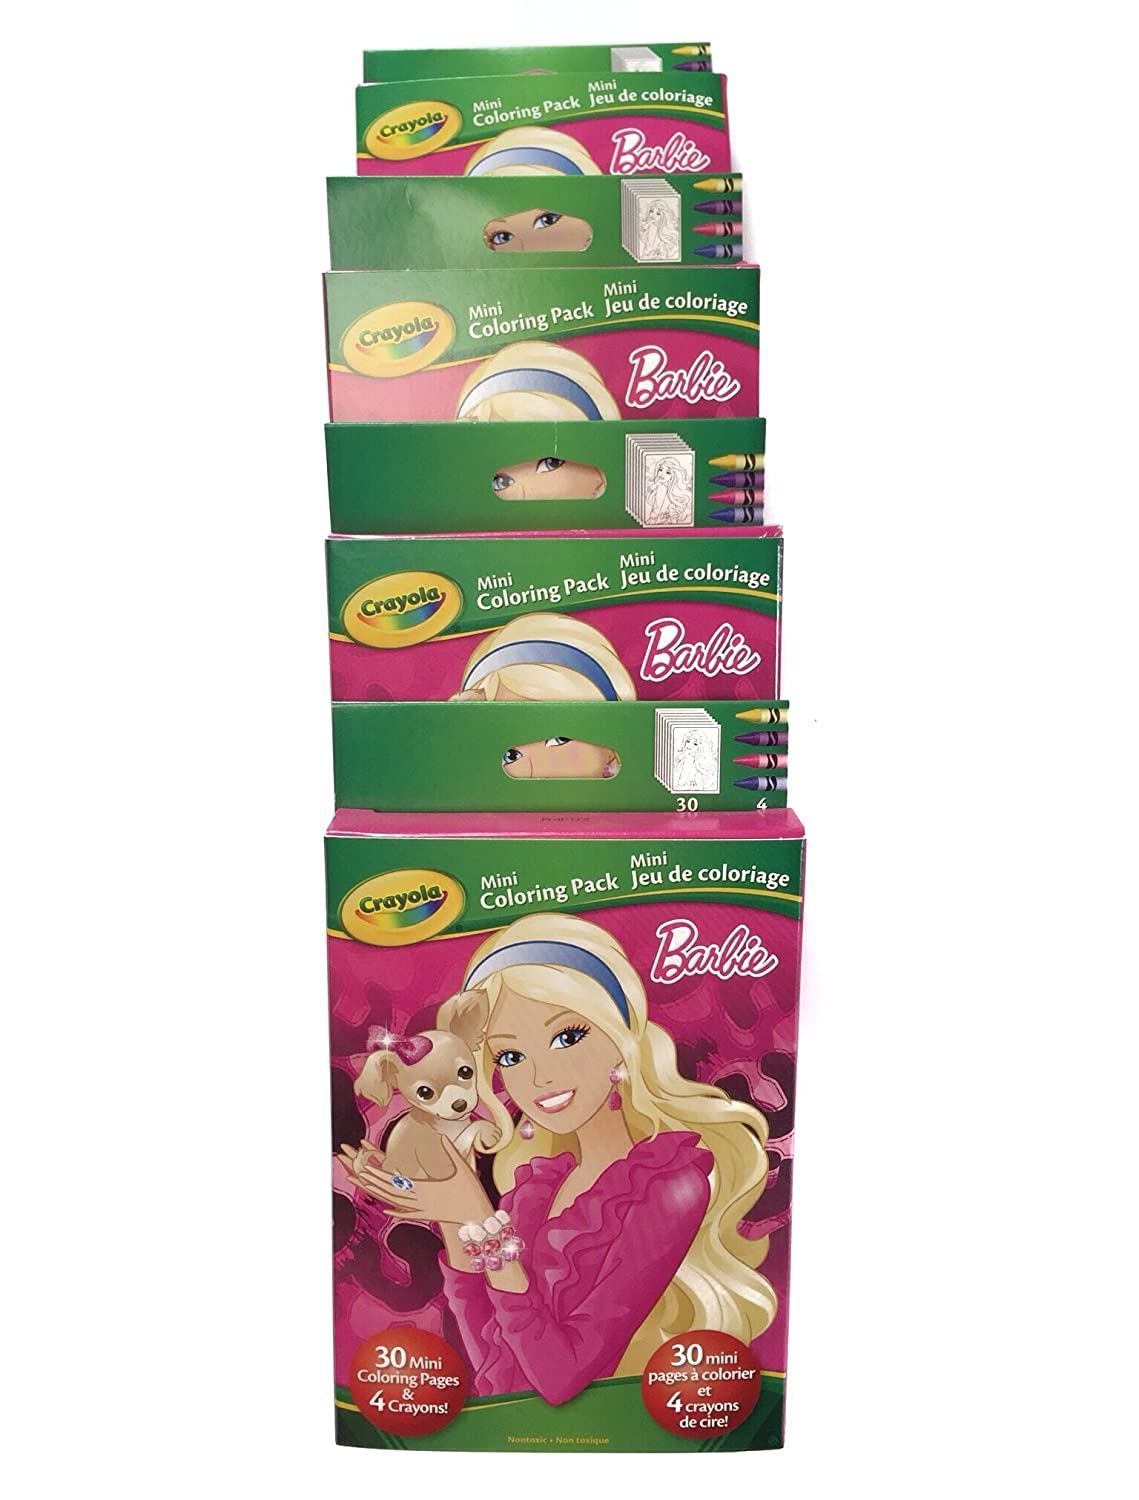 Amazon.com: 4 Pack Crayola Barbie Mini Coloring Pages 4 Crayons ...